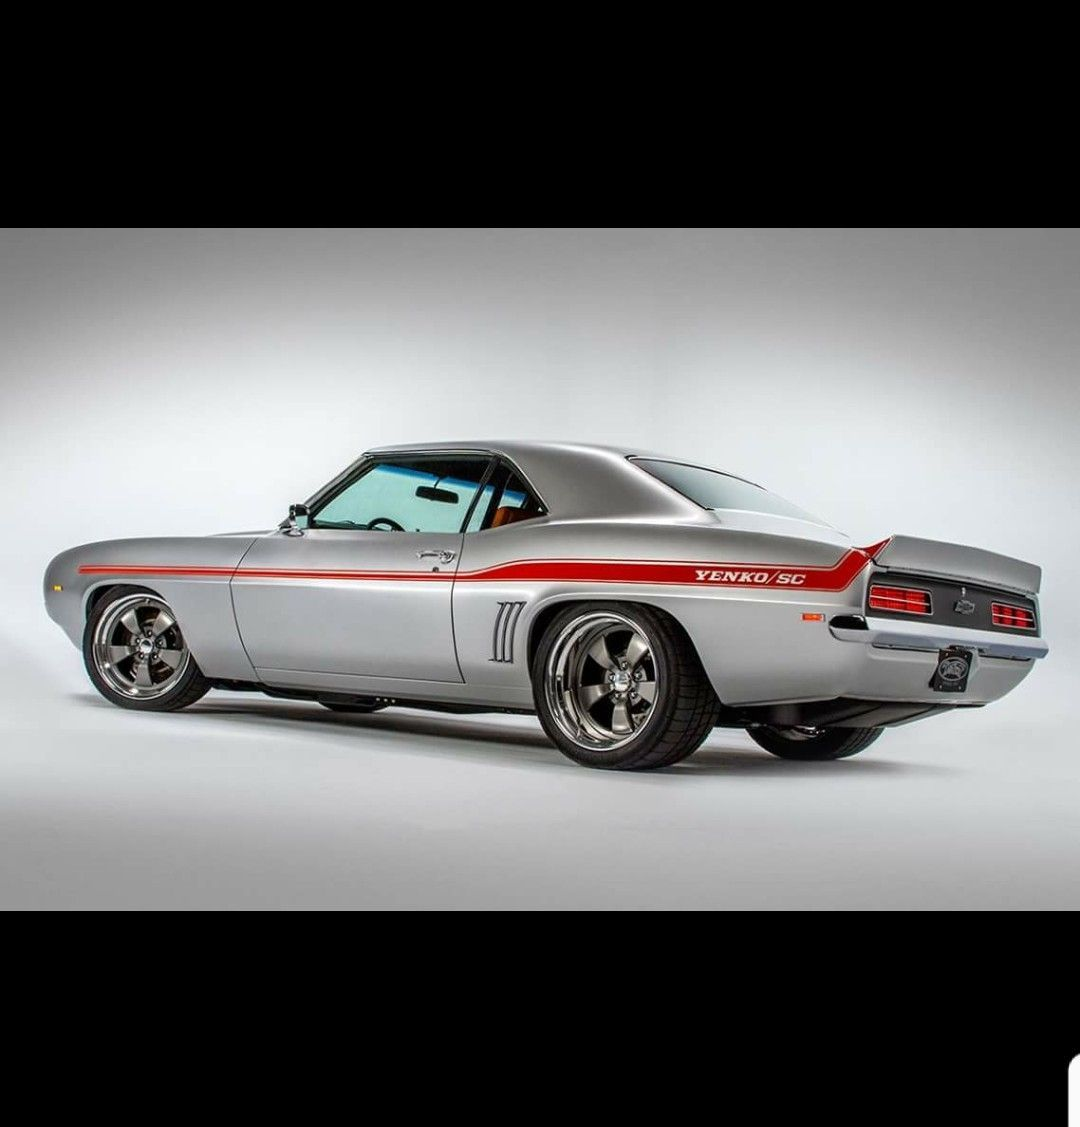 That is one badass camaro | Cars of course | Pinterest | Cars ...